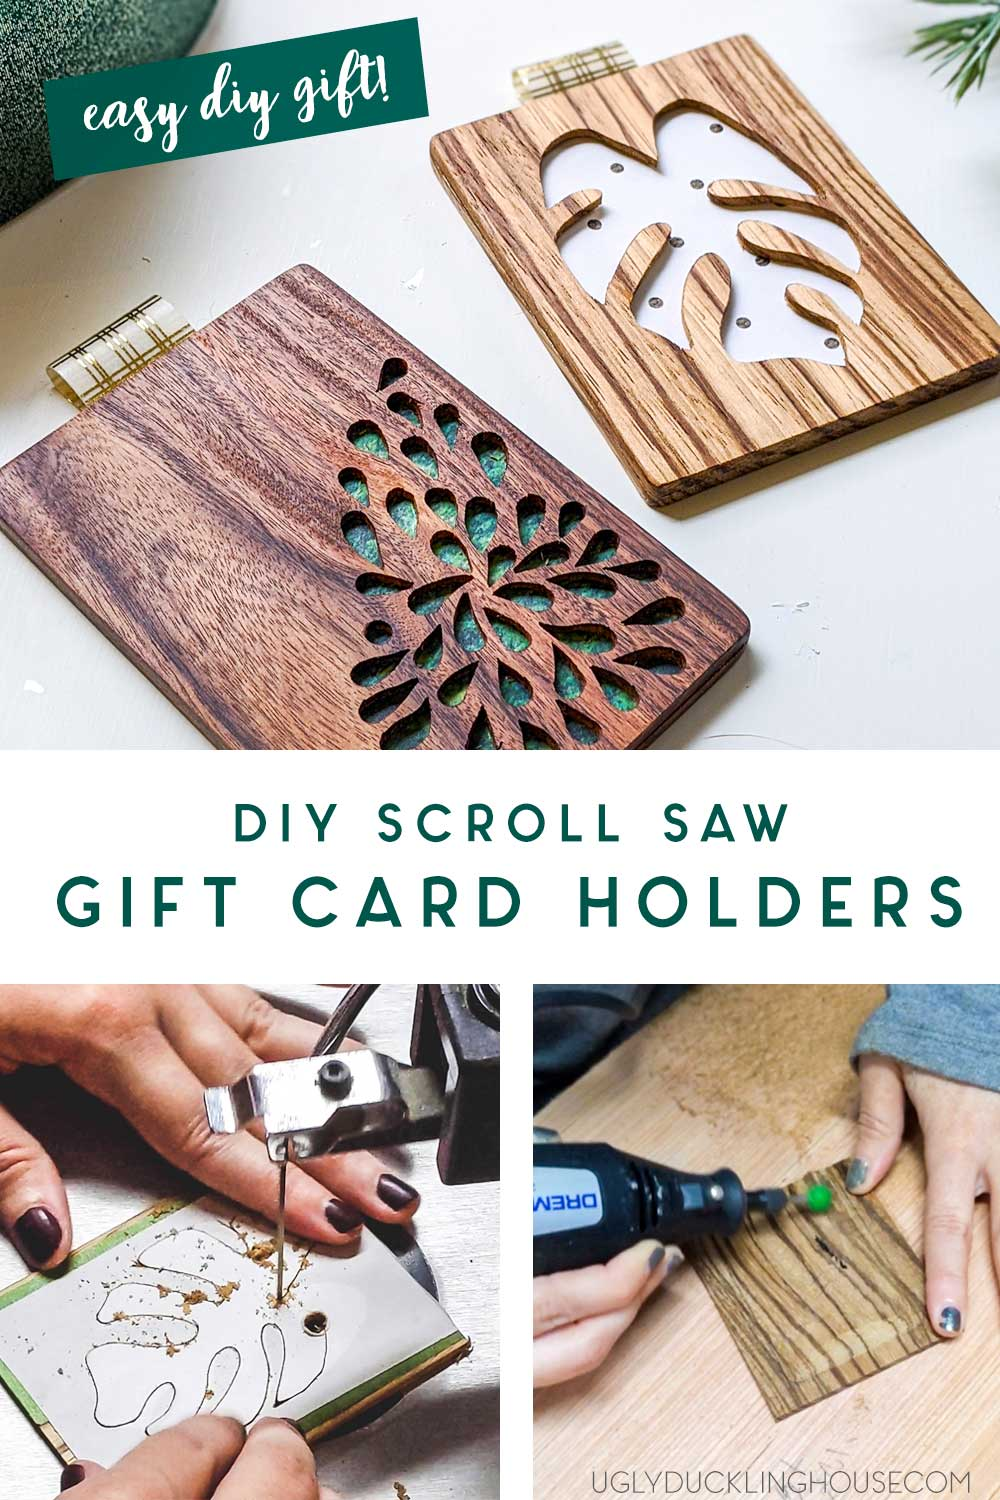 diy gift card holders - scrolled with custom wood designs